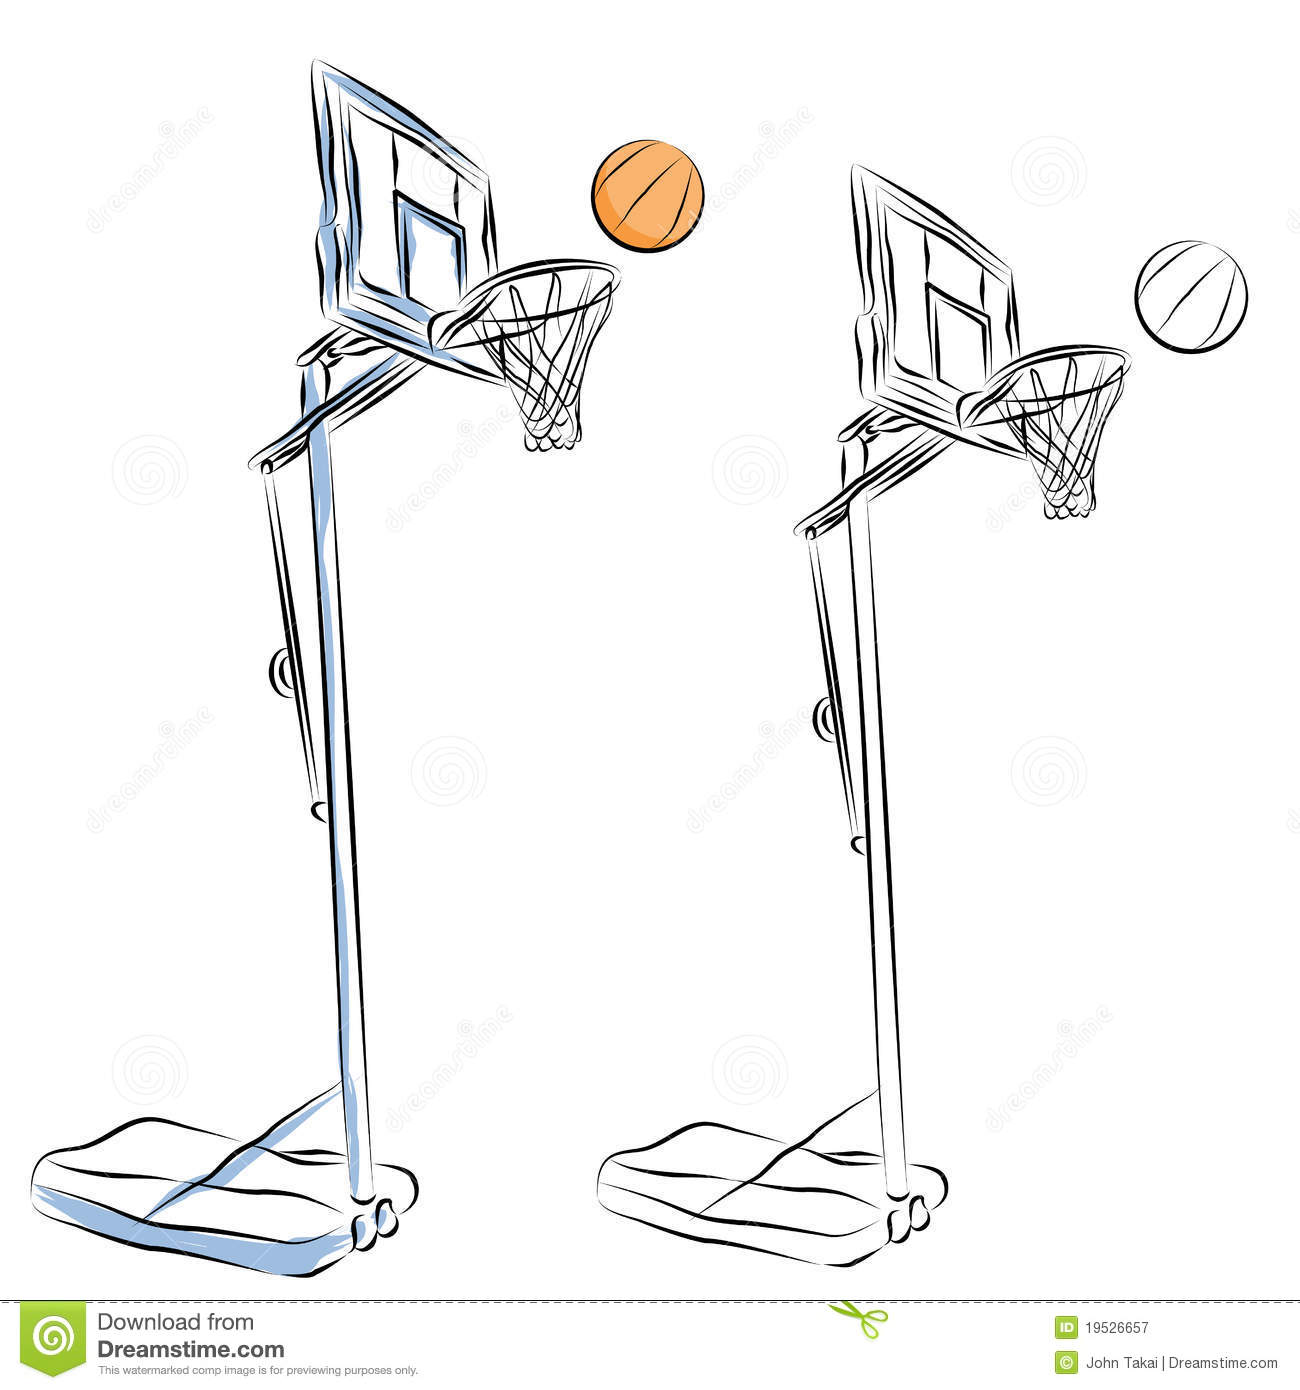 Line Drawing Basketball : Basketball hoop stand line drawing royalty free stock